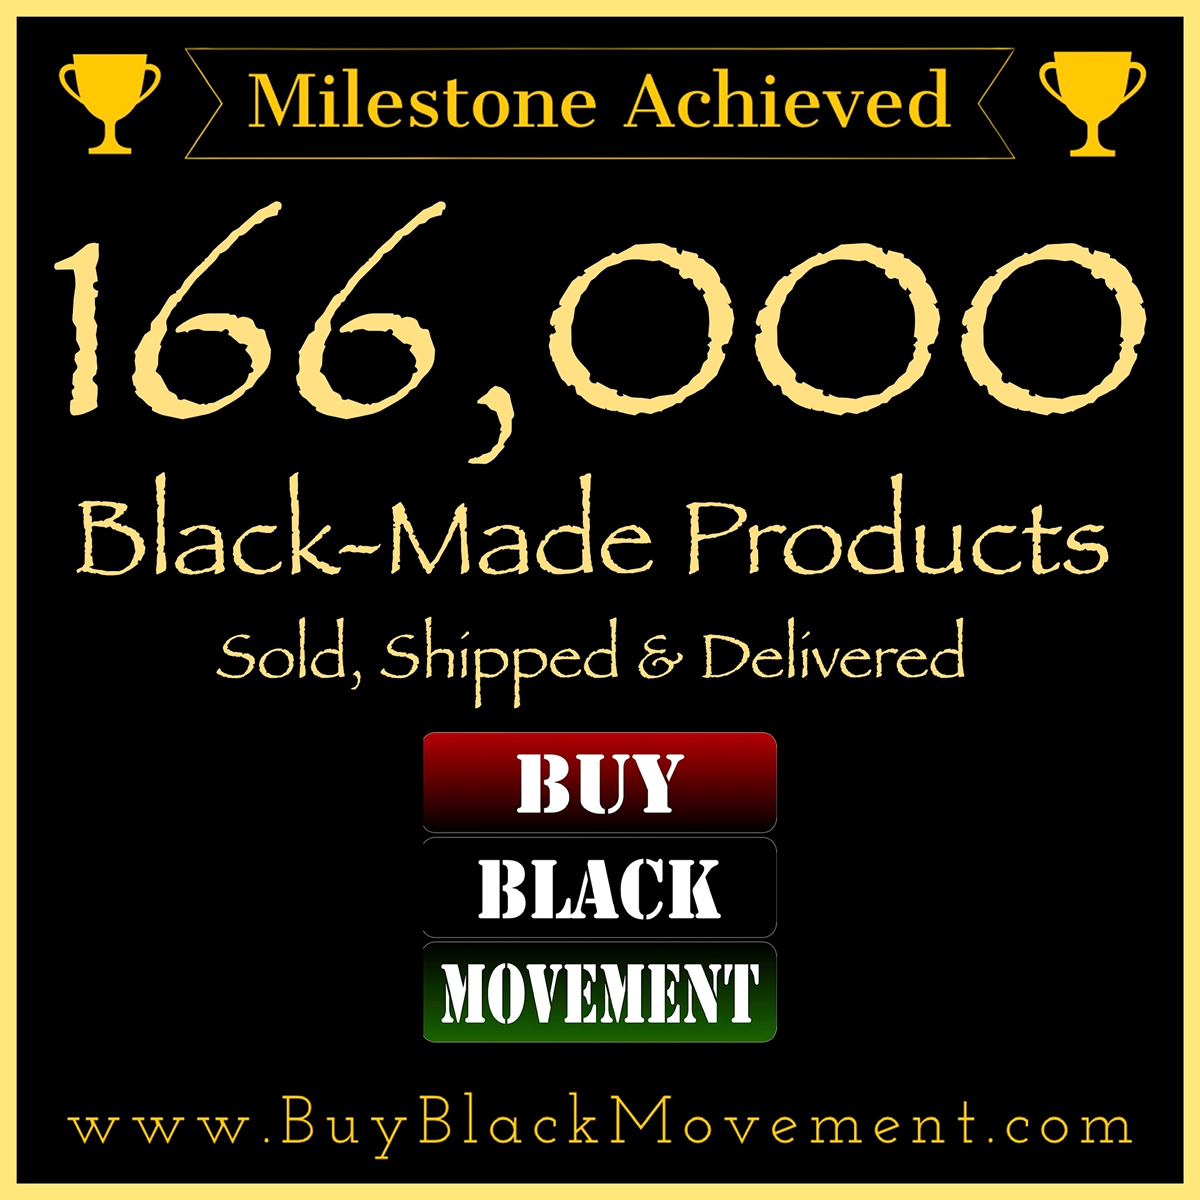 166,000 Products Sold